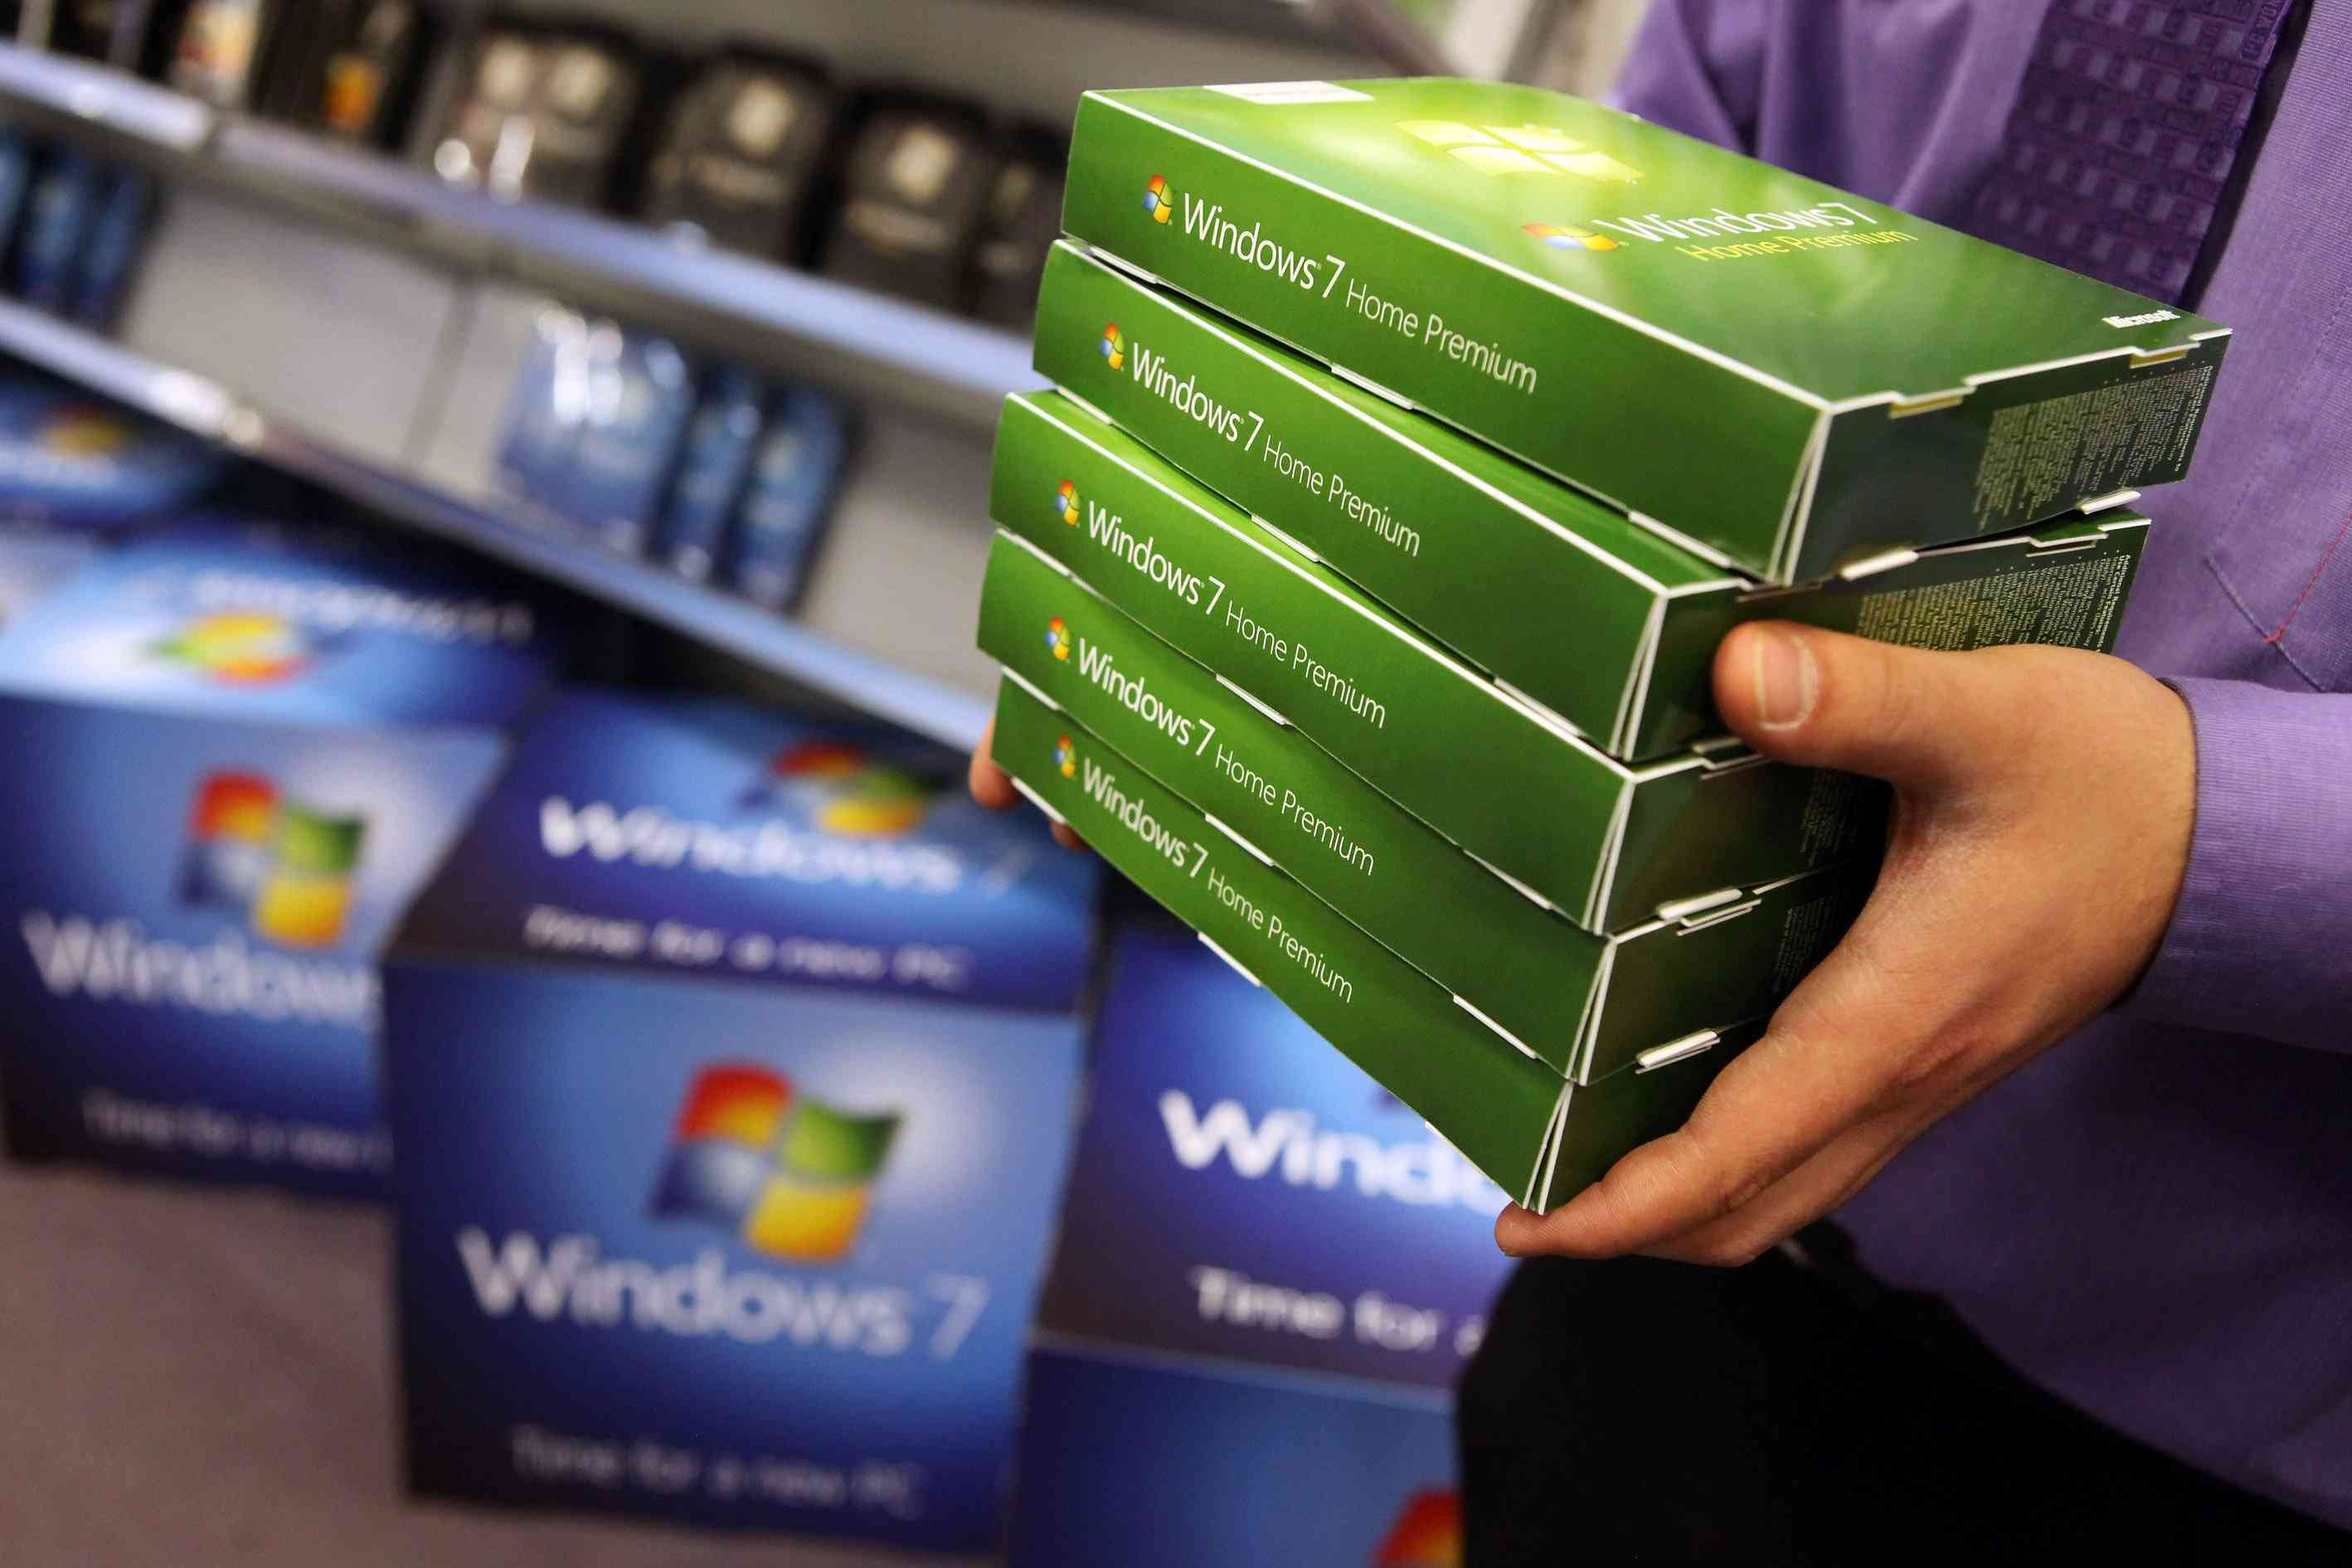 Person holding Windows 7 software boxes